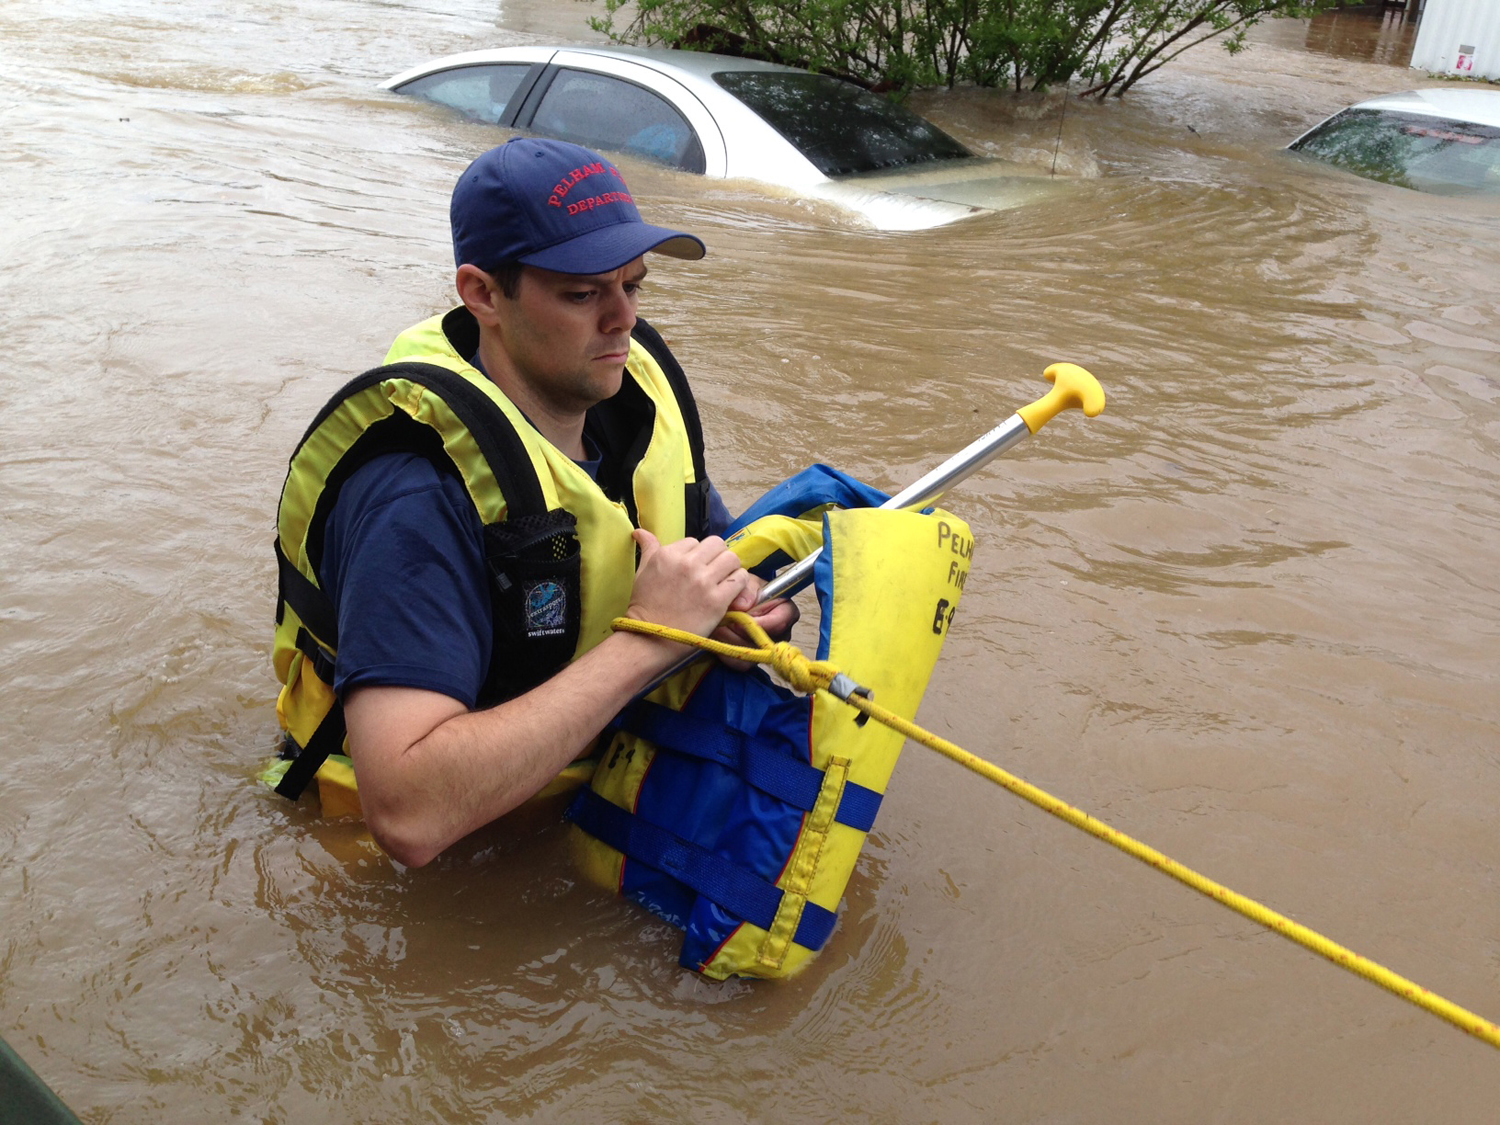 Firefighter Rusty Murphy wades through flood waters in a mobile home park in Pelham, Ala., on Monday, April 7, 2014.